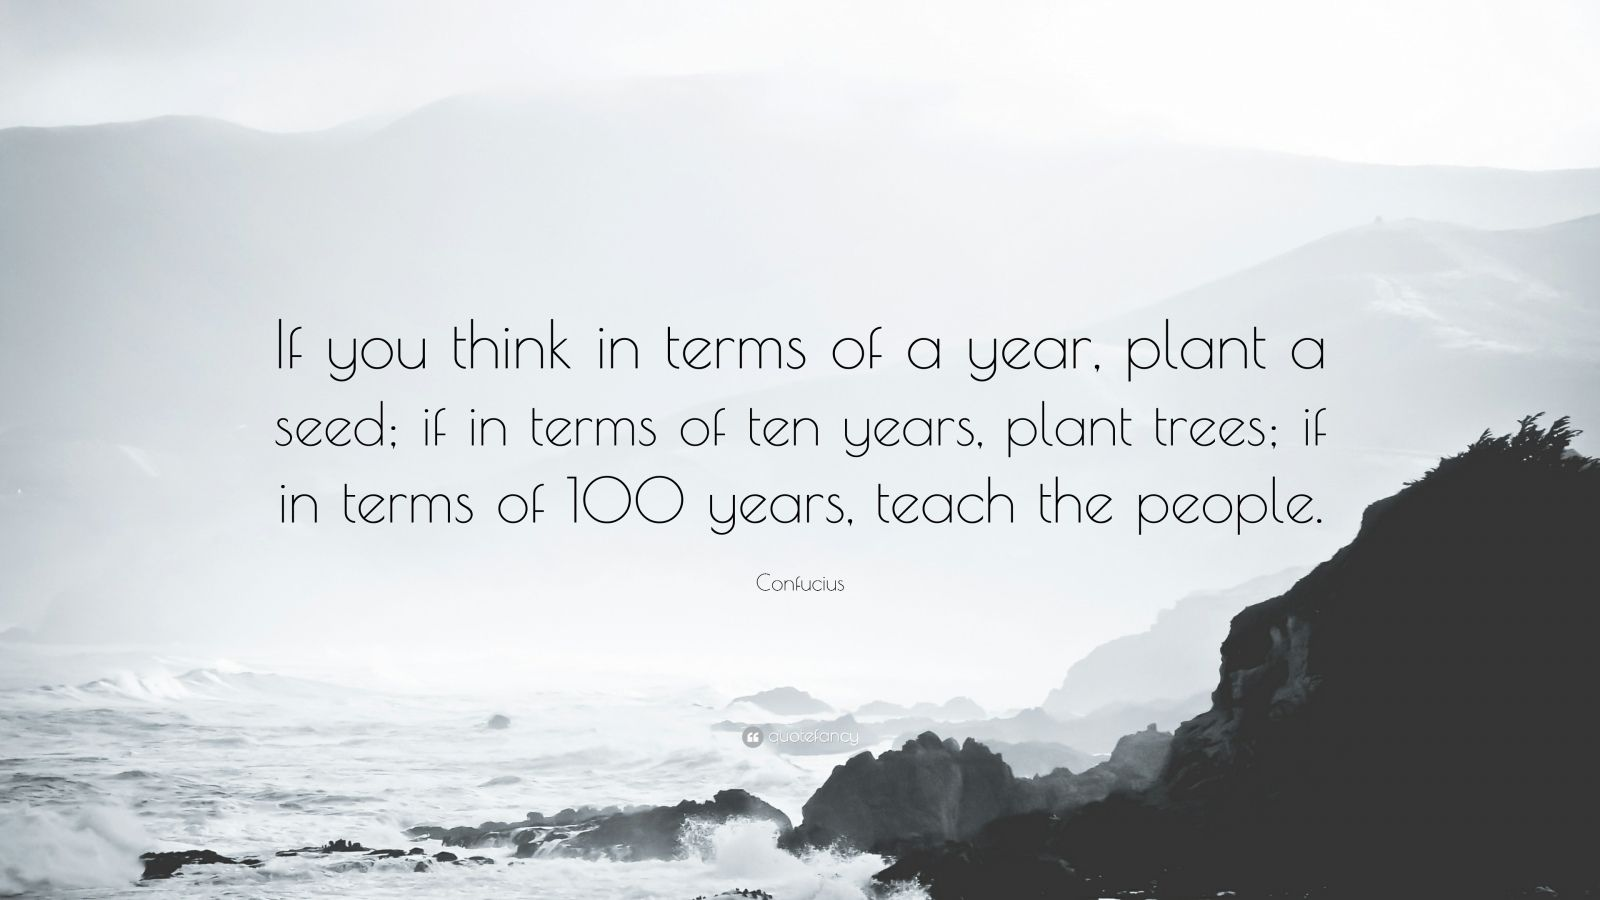 """Confucius Quote: """"If you think in terms of a year, plant a seed; if in terms of ten years, plant trees; if in terms of 100 years, teach the people."""""""